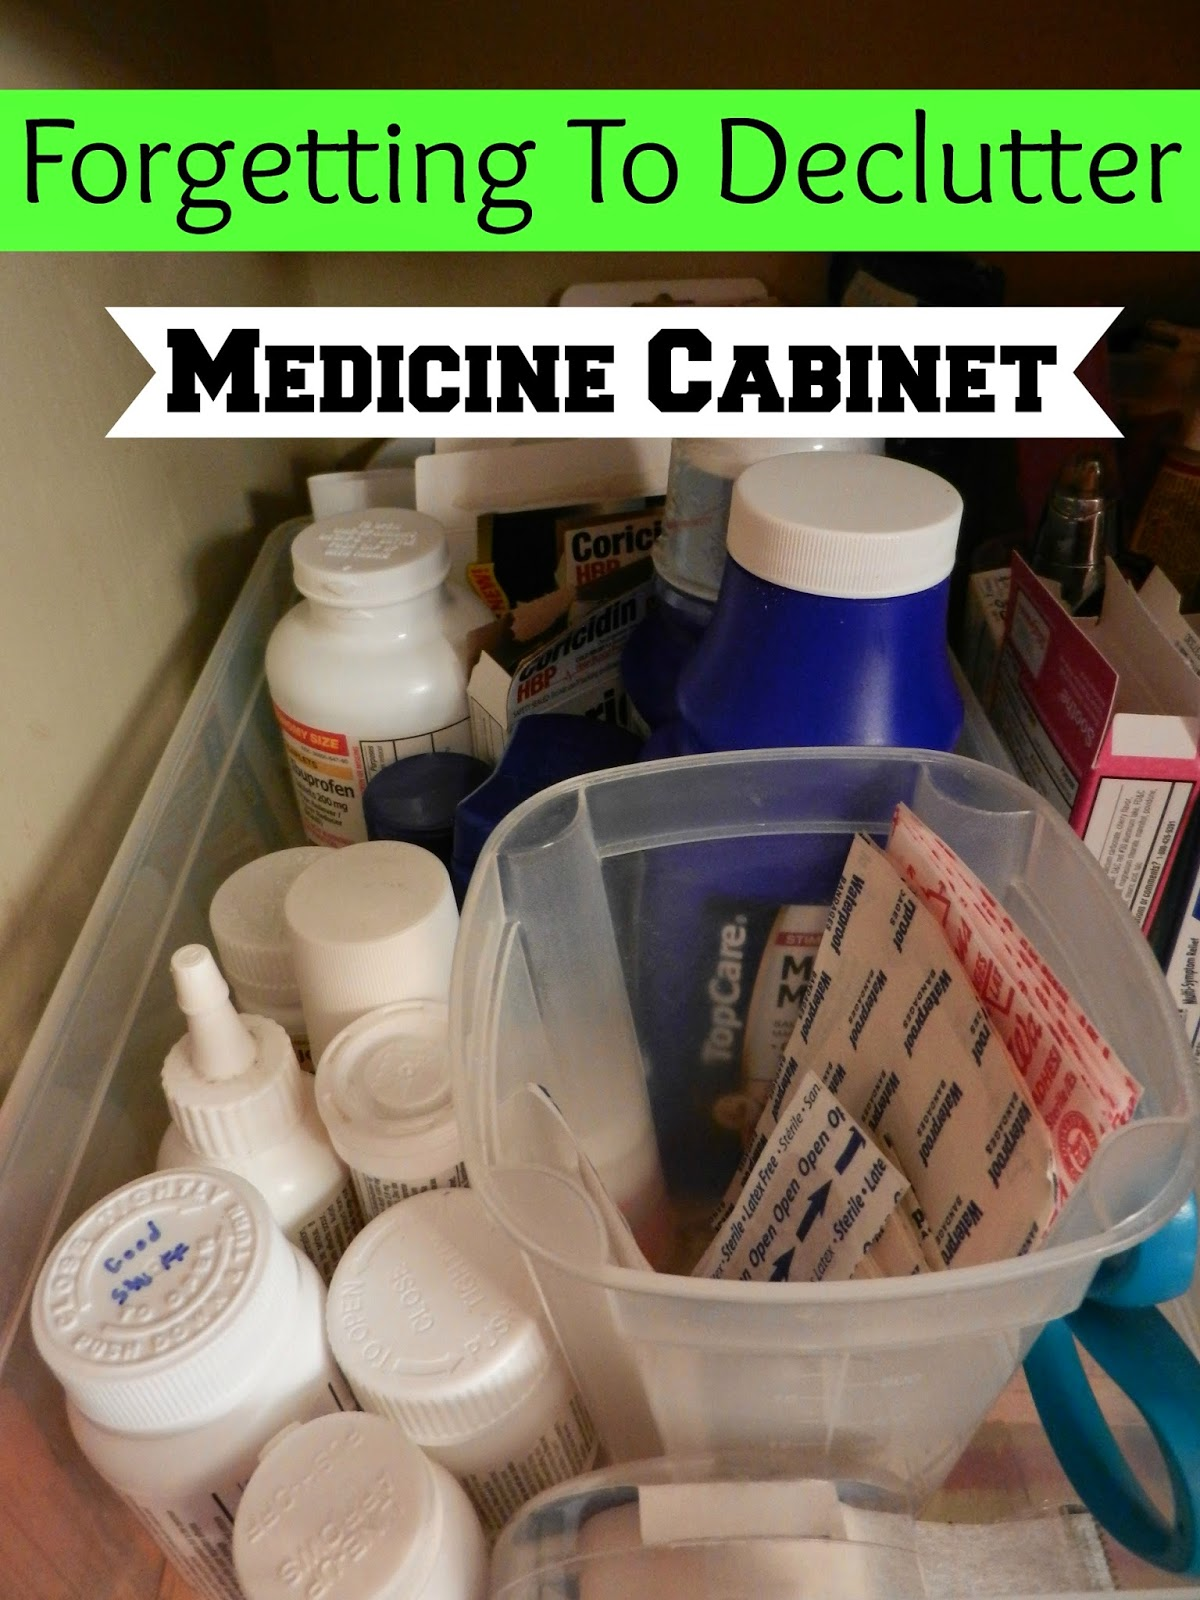 Forgetting To Declutter: Medicine Cabinet